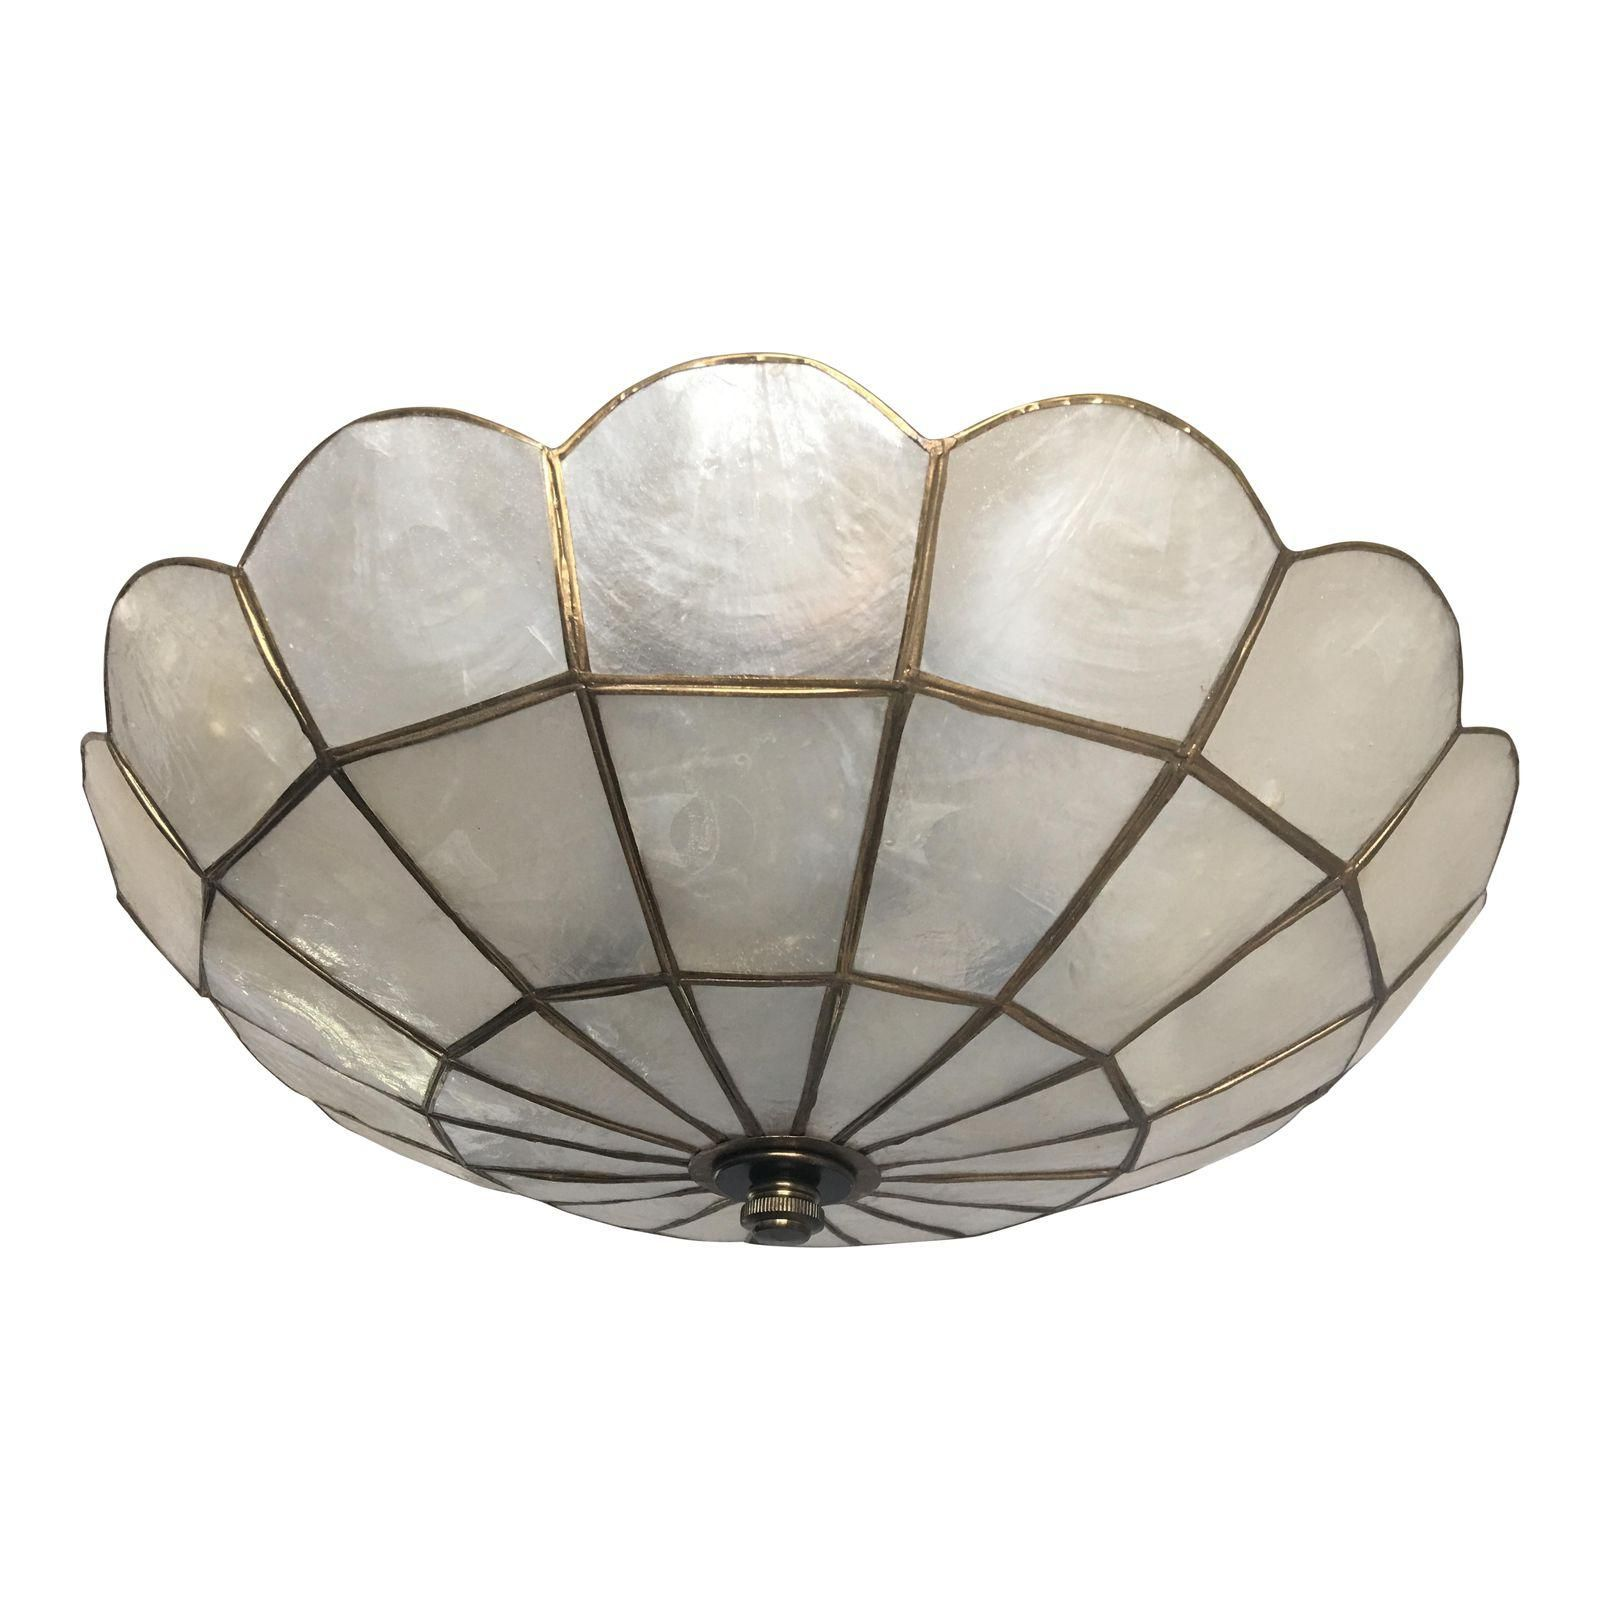 1950s Capiz Shell Ceiling Light Capiz Shell Capiz Ceiling Lights